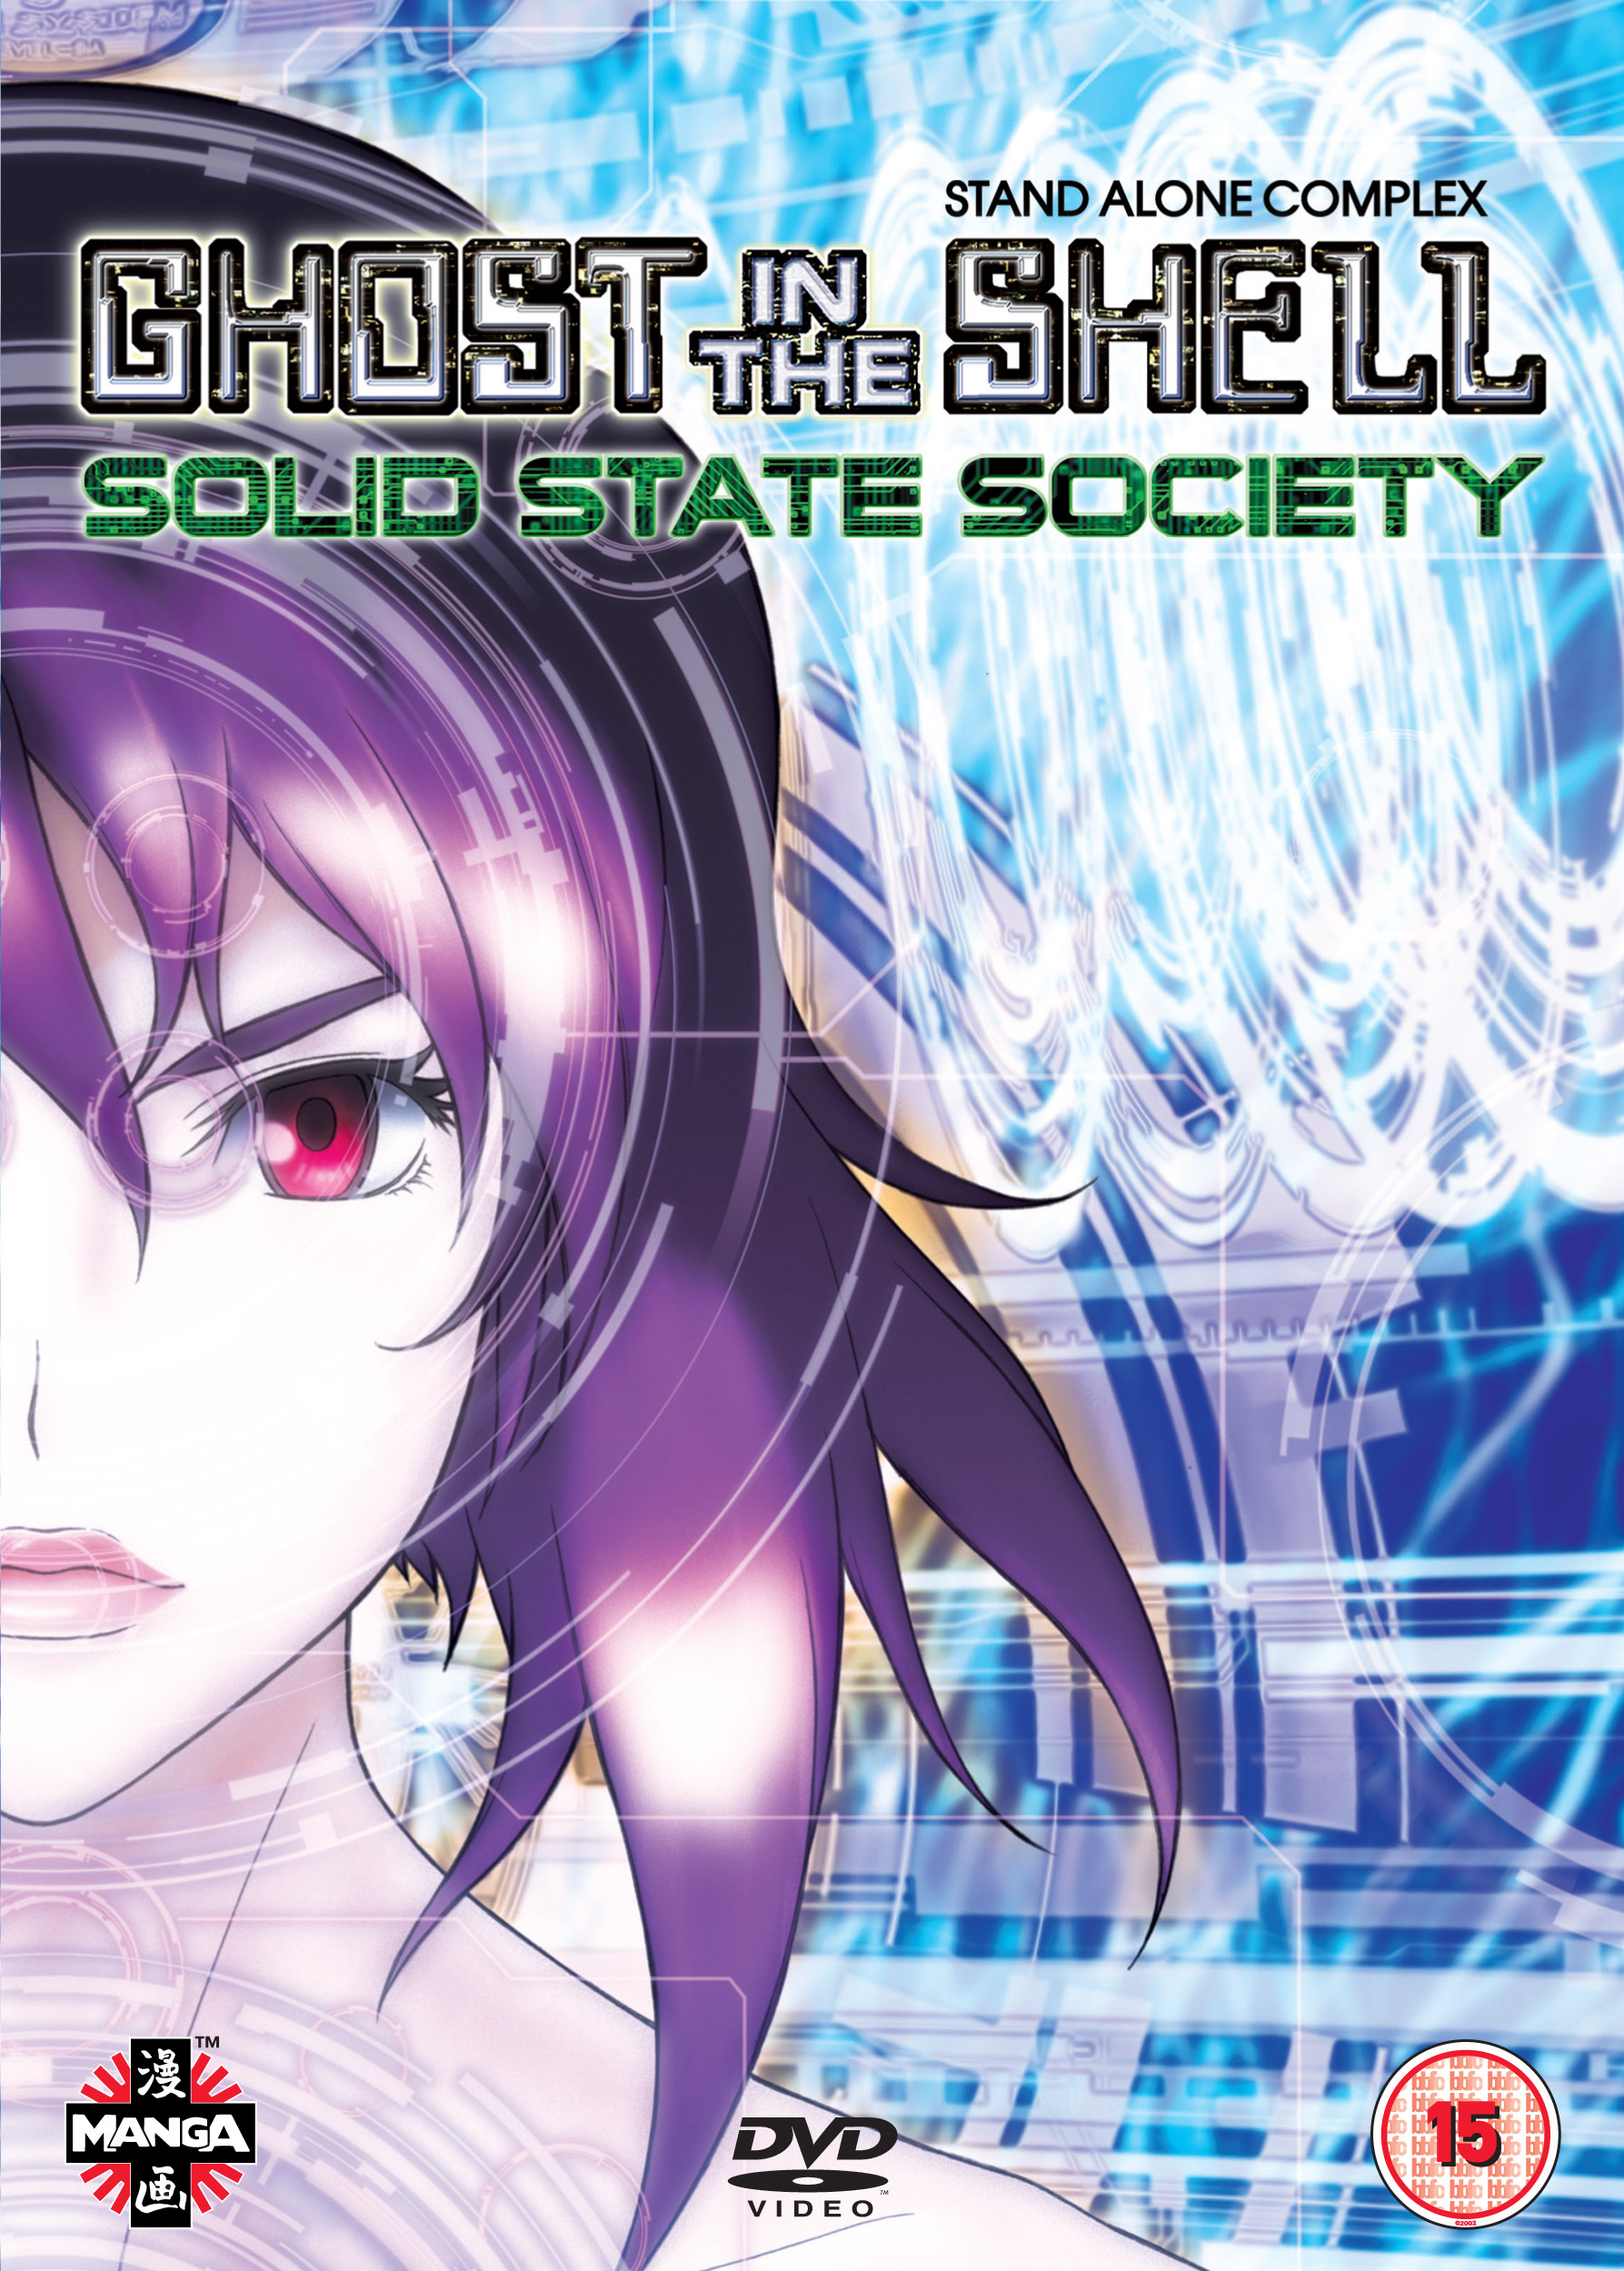 I Just Heard About This Thing But I Have No Idea What I Should Do About It And In What Order Help A Ghost In The Shell Crash Course By U Secretcatpolicy